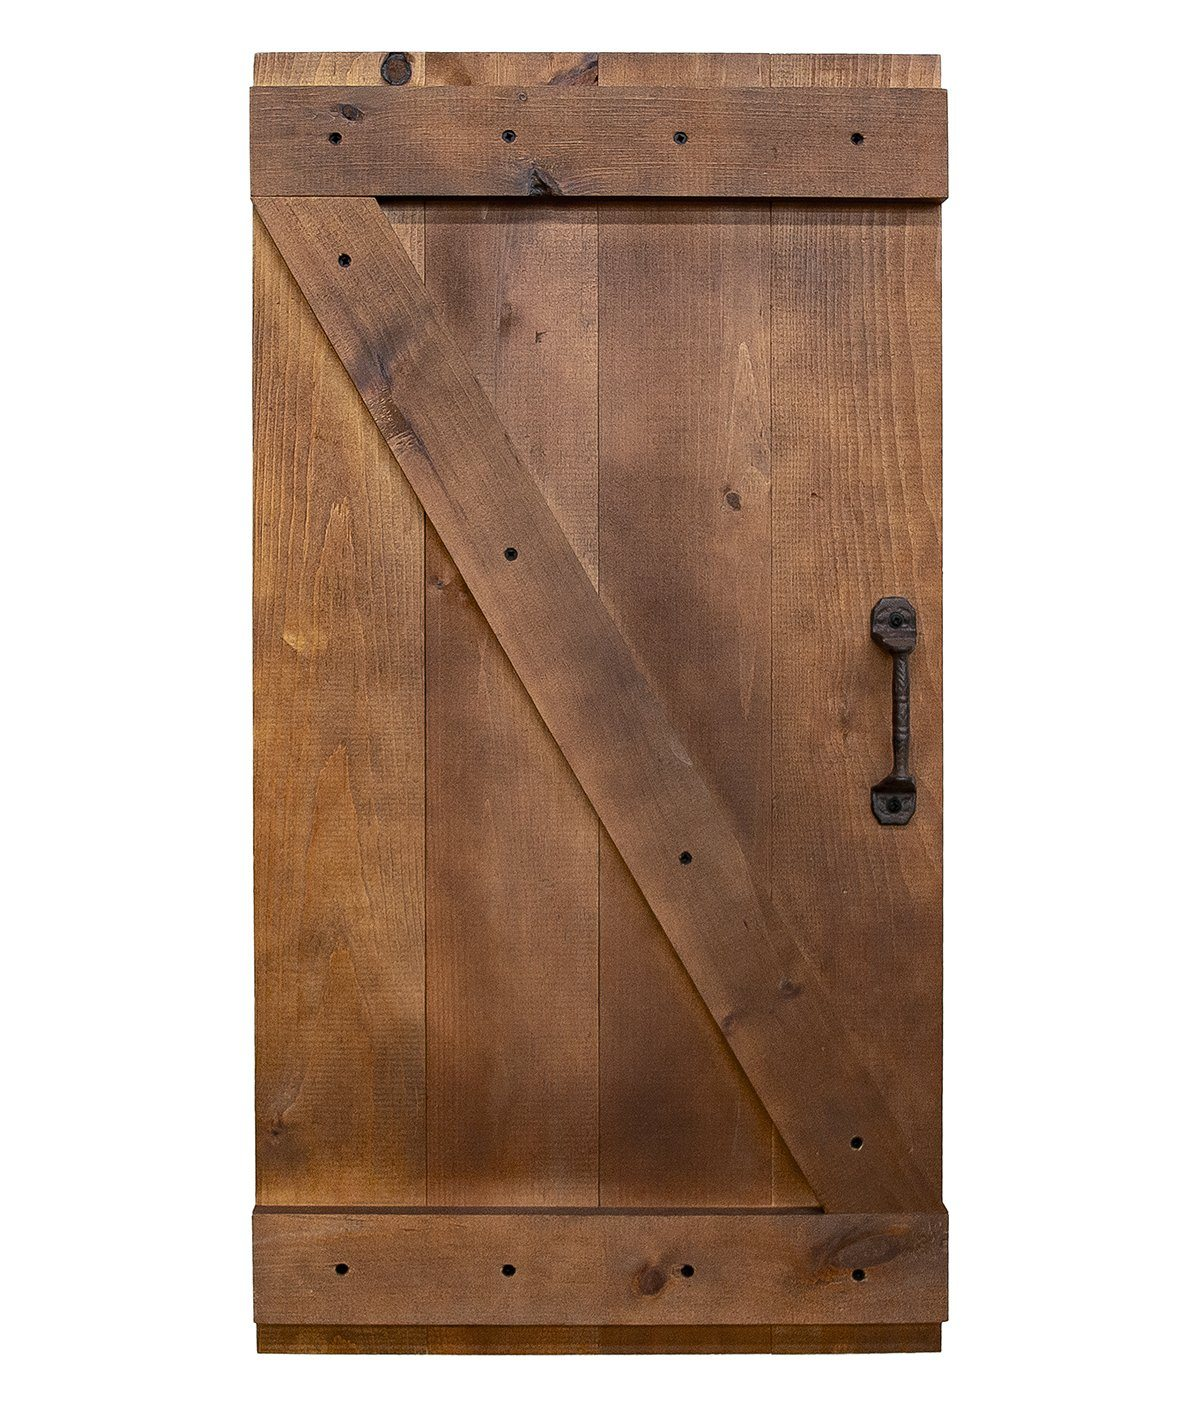 Tactical Walls Mini Barn Door Concealment